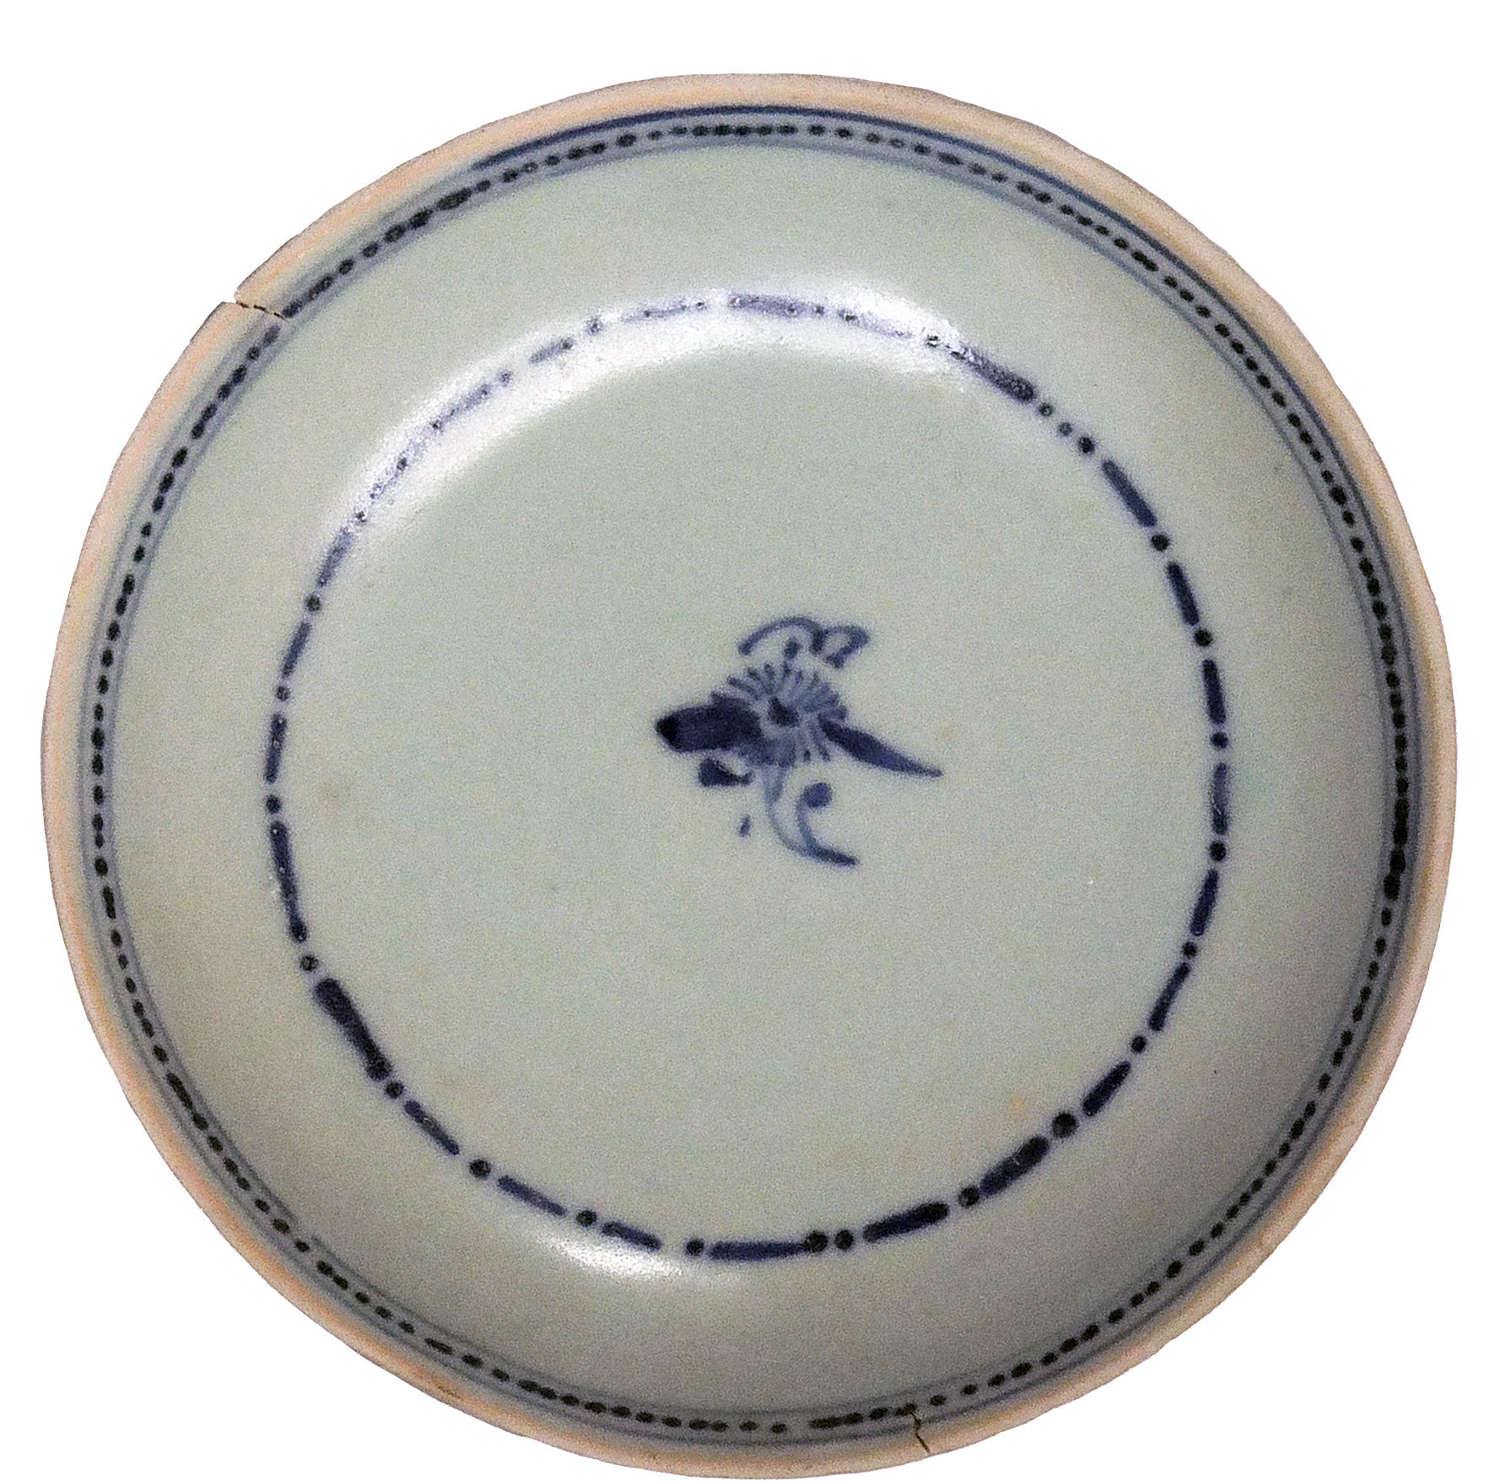 A Chinese Tek Sing shipwreck blue and white porcelain cargo bowl